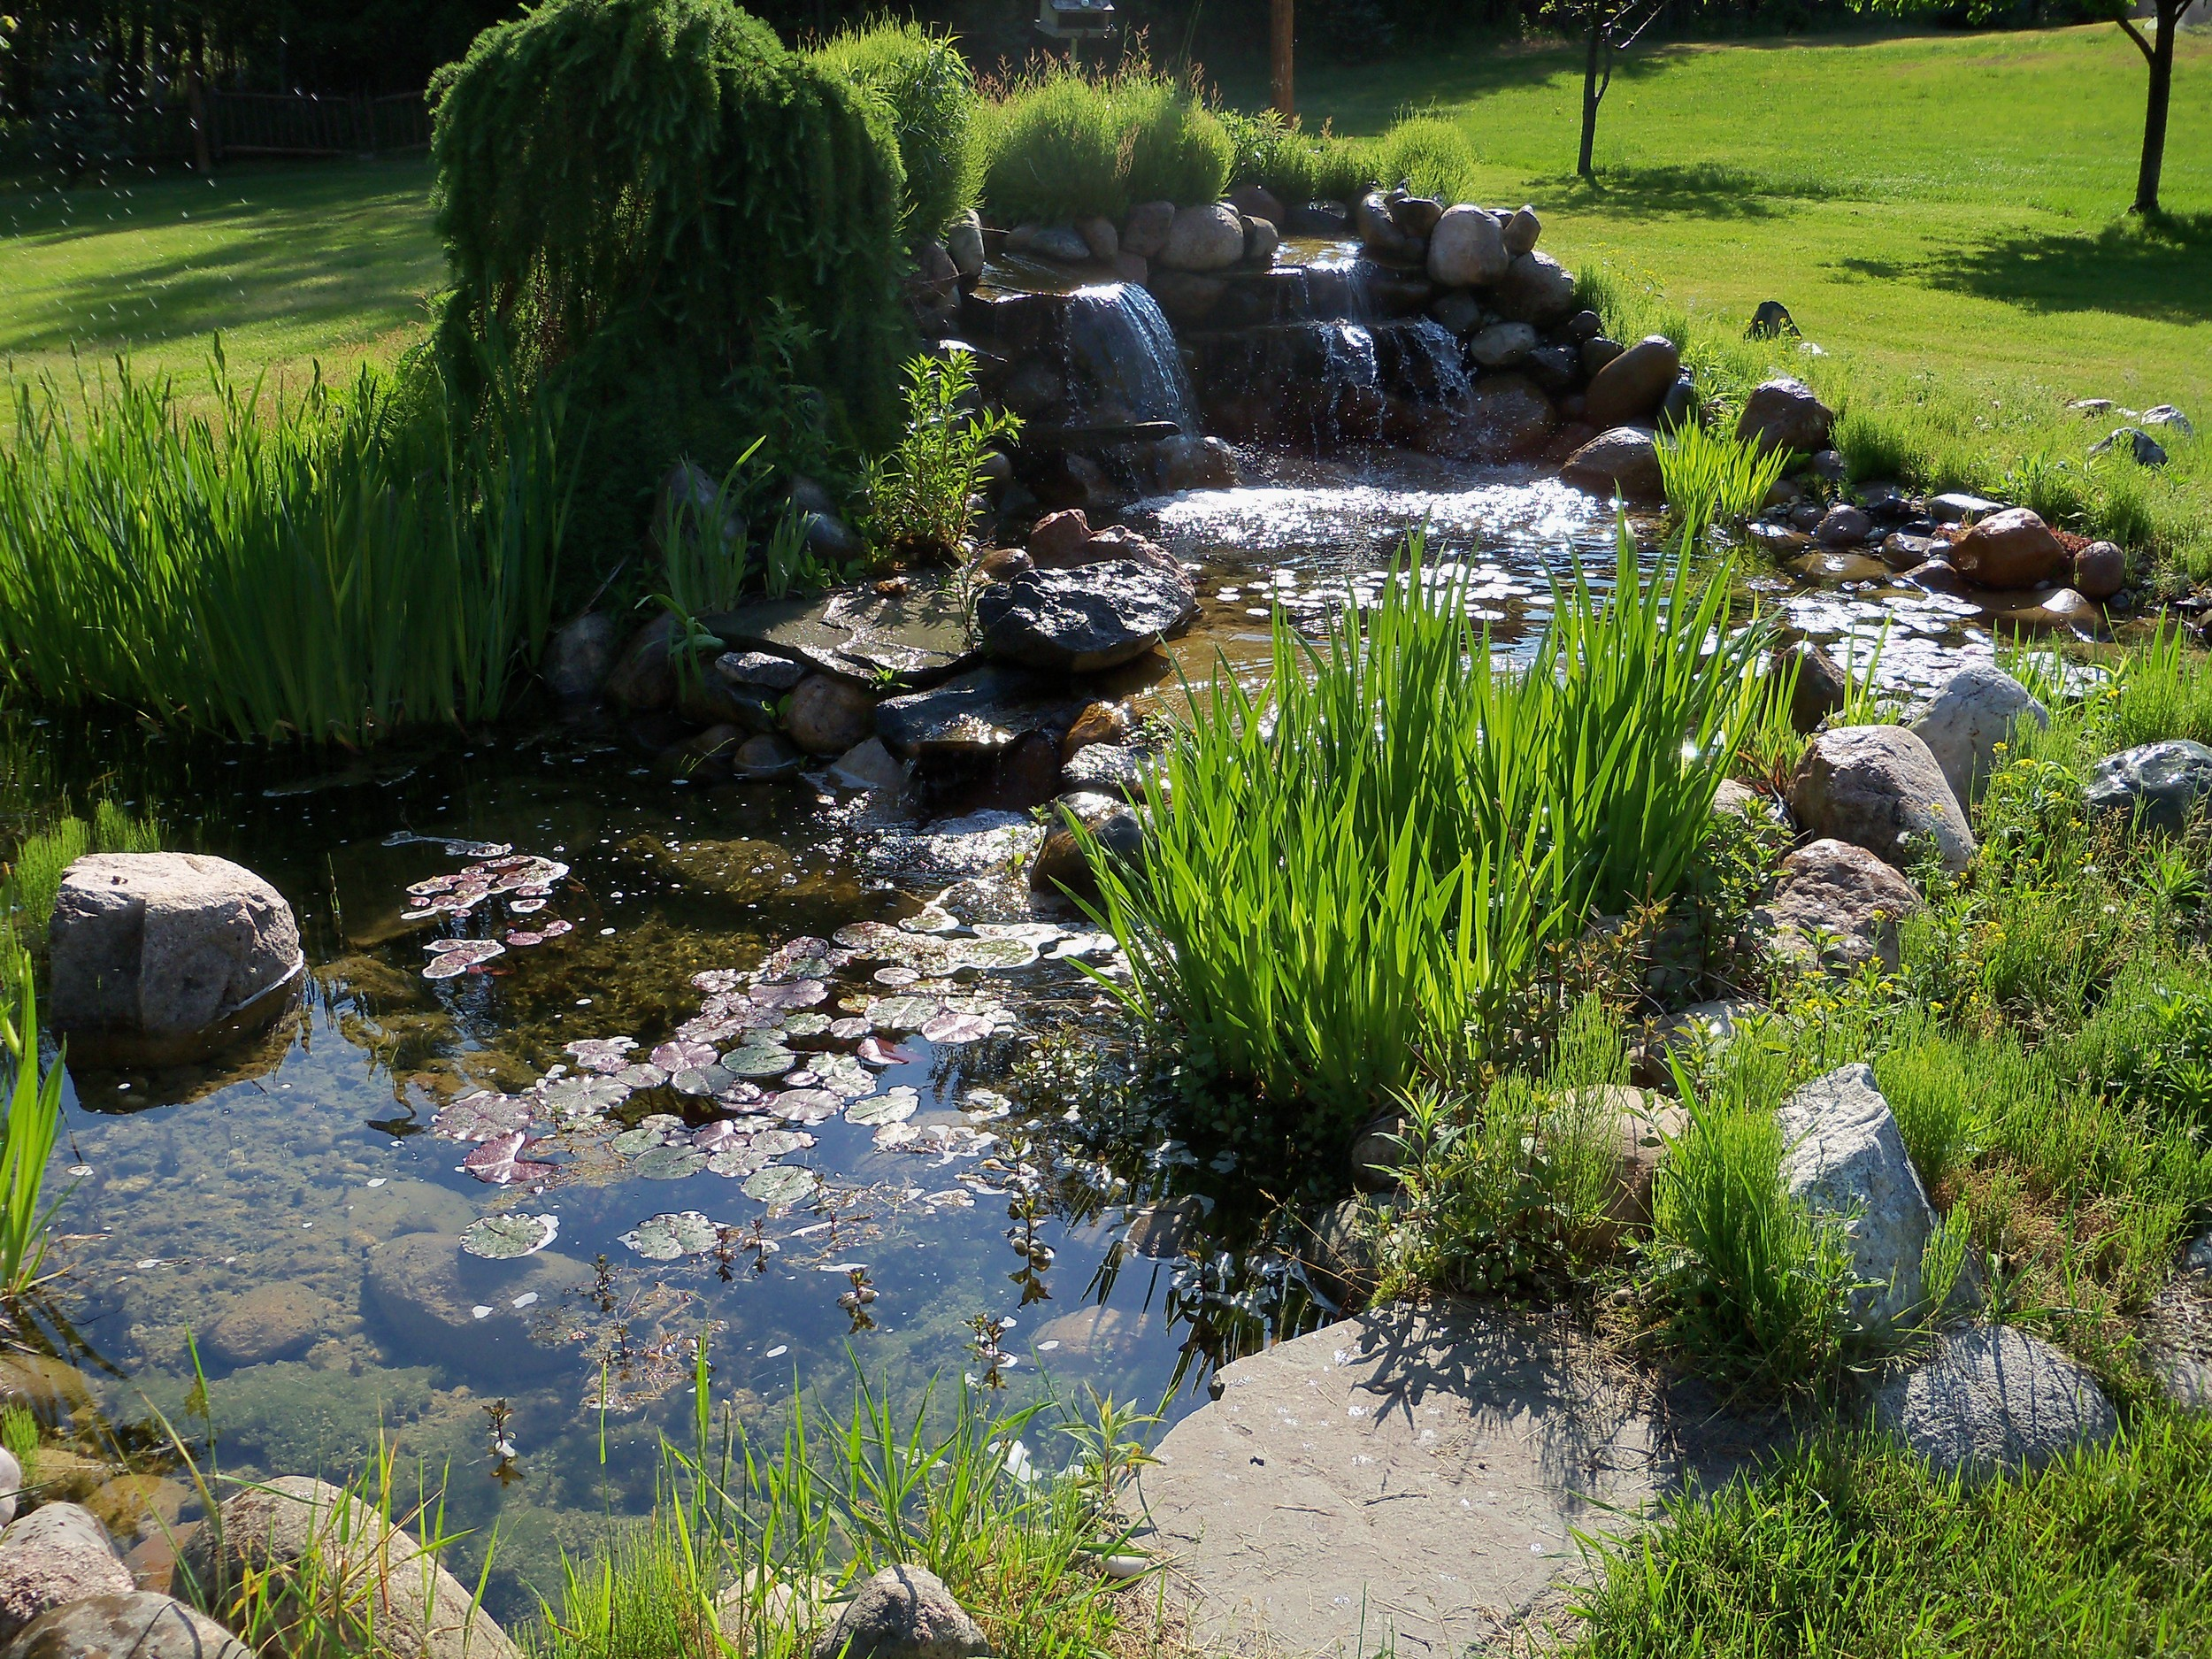 This michigan pond is a frog oasis